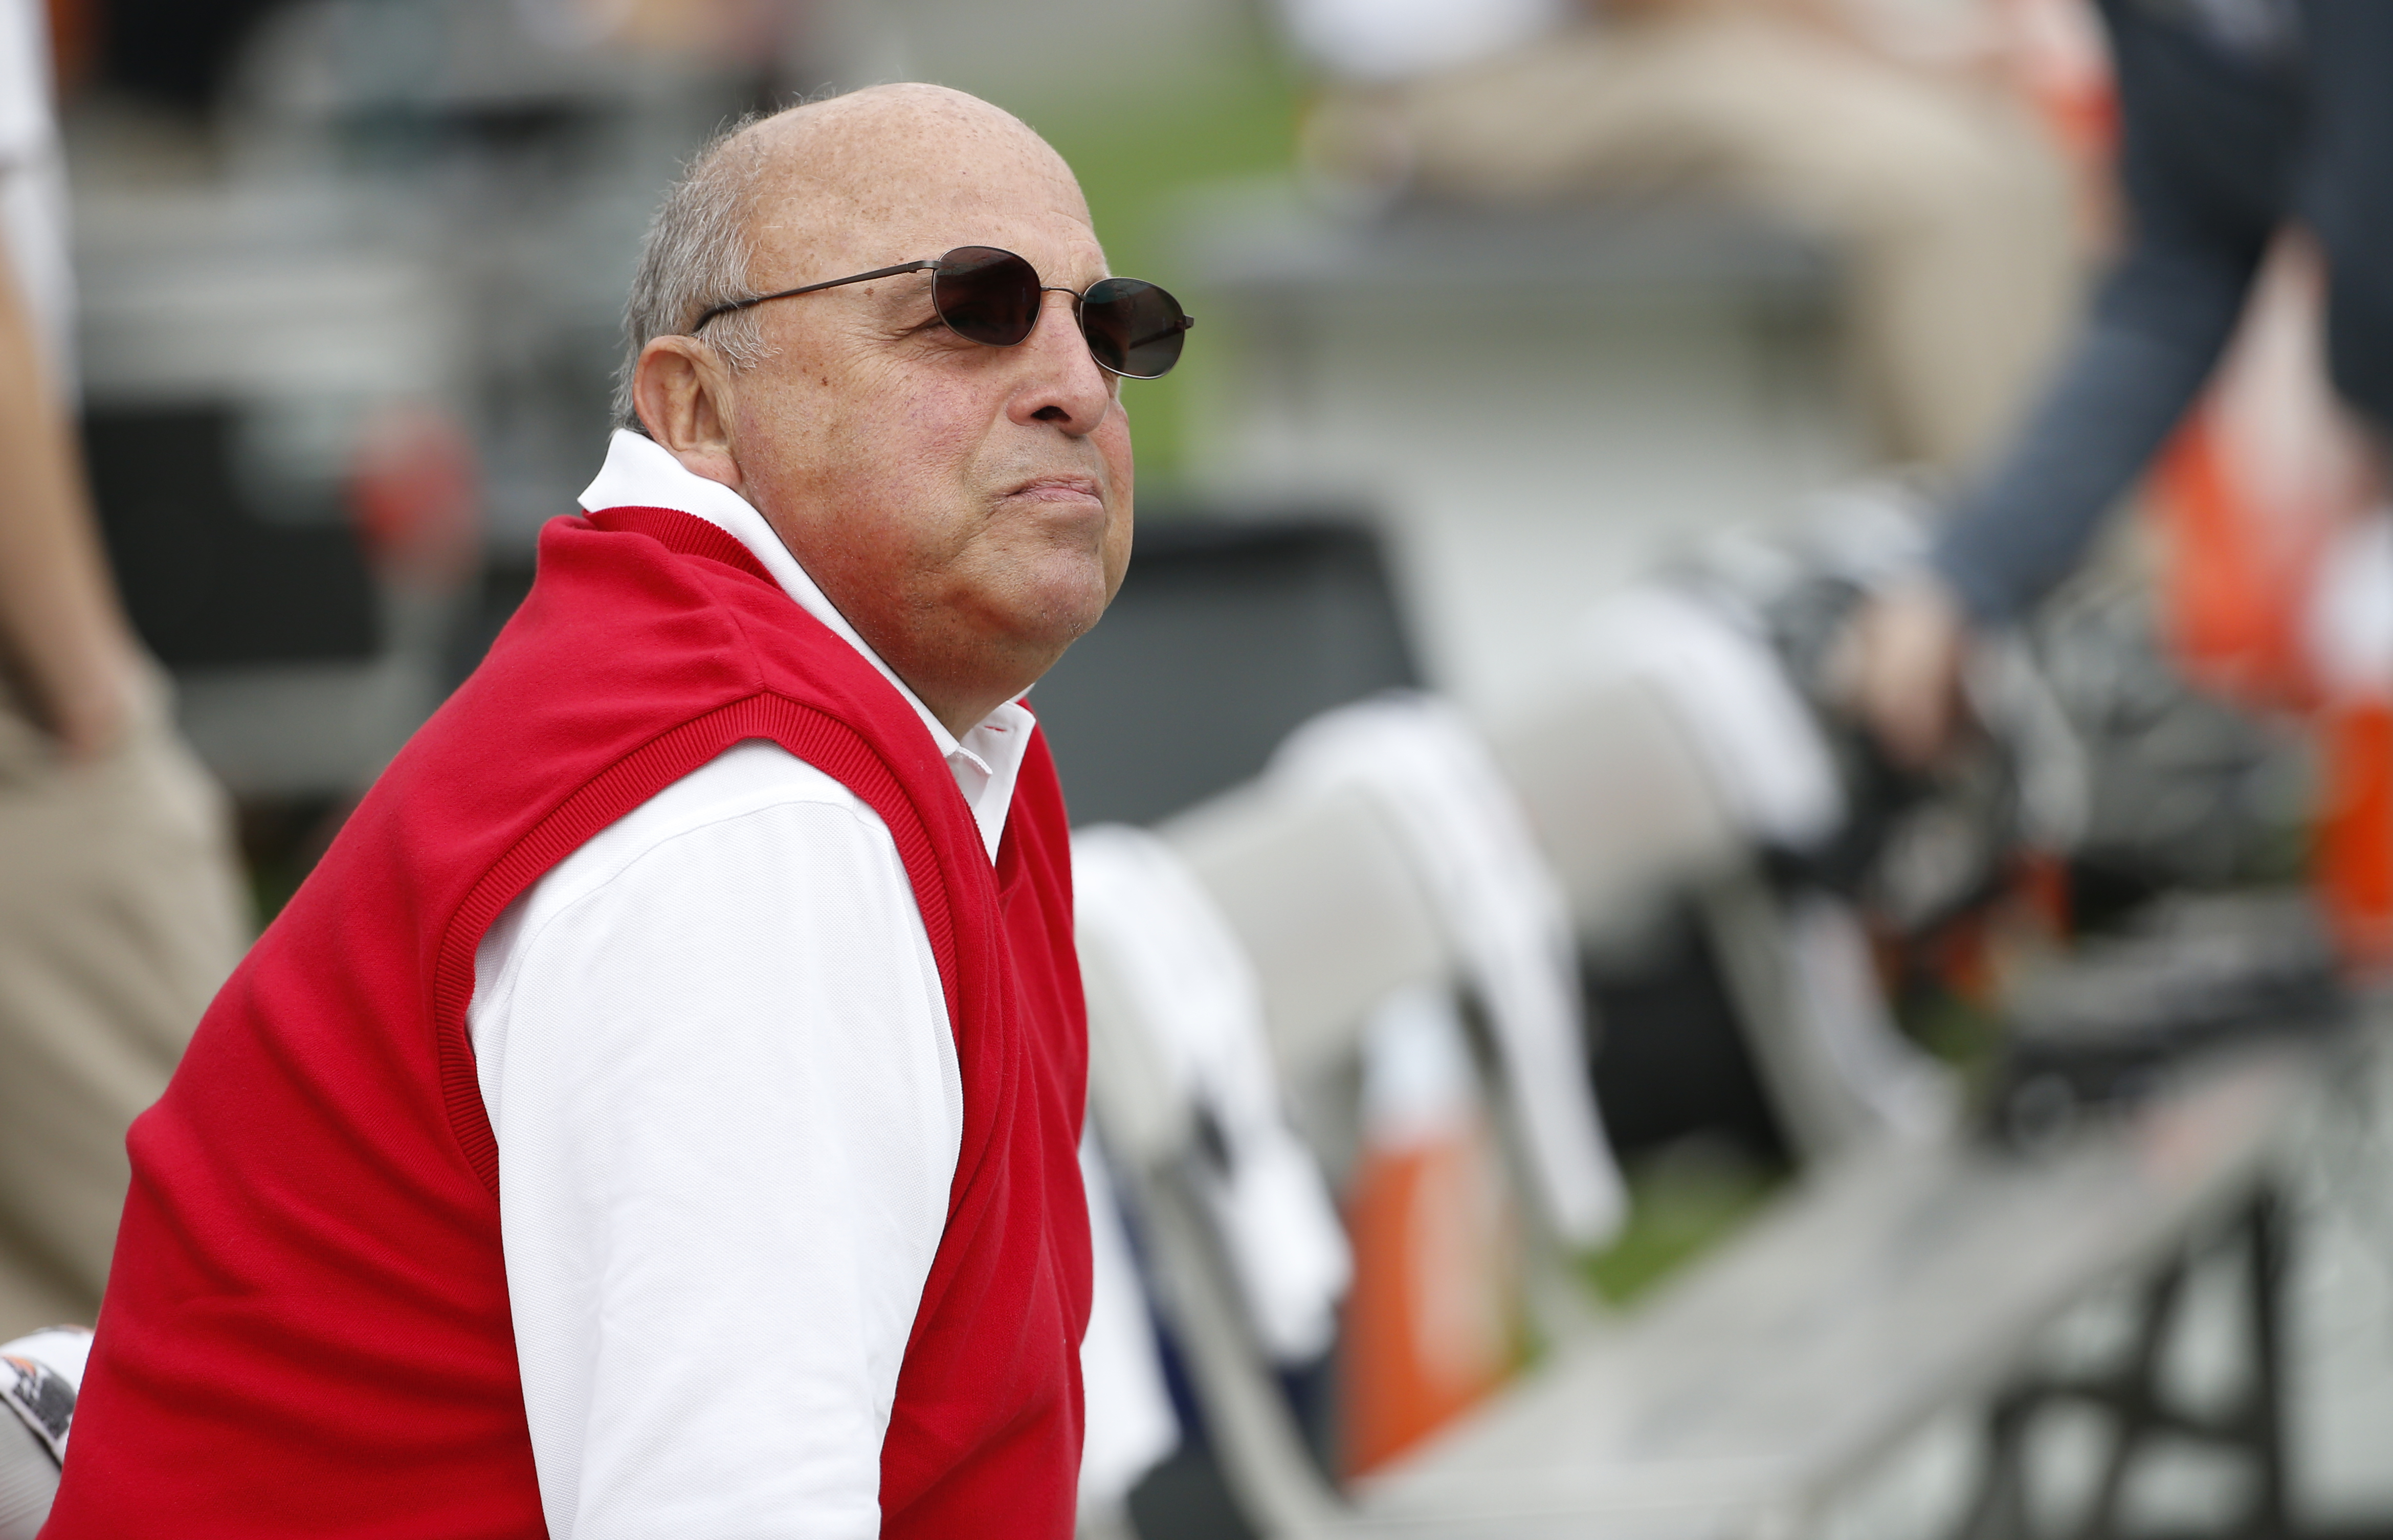 TAMPA, FL - JANUARY 1:  Acting head coach Barry Alvarez of the Wisconsin Badgers looks on from the bench before the start of the Outback Bowl against the Auburn Tigers on January 1, 2015 during  at Raymond James Stadium in Tampa, Florida.  (Photo by Brian Blanco/Getty Images)